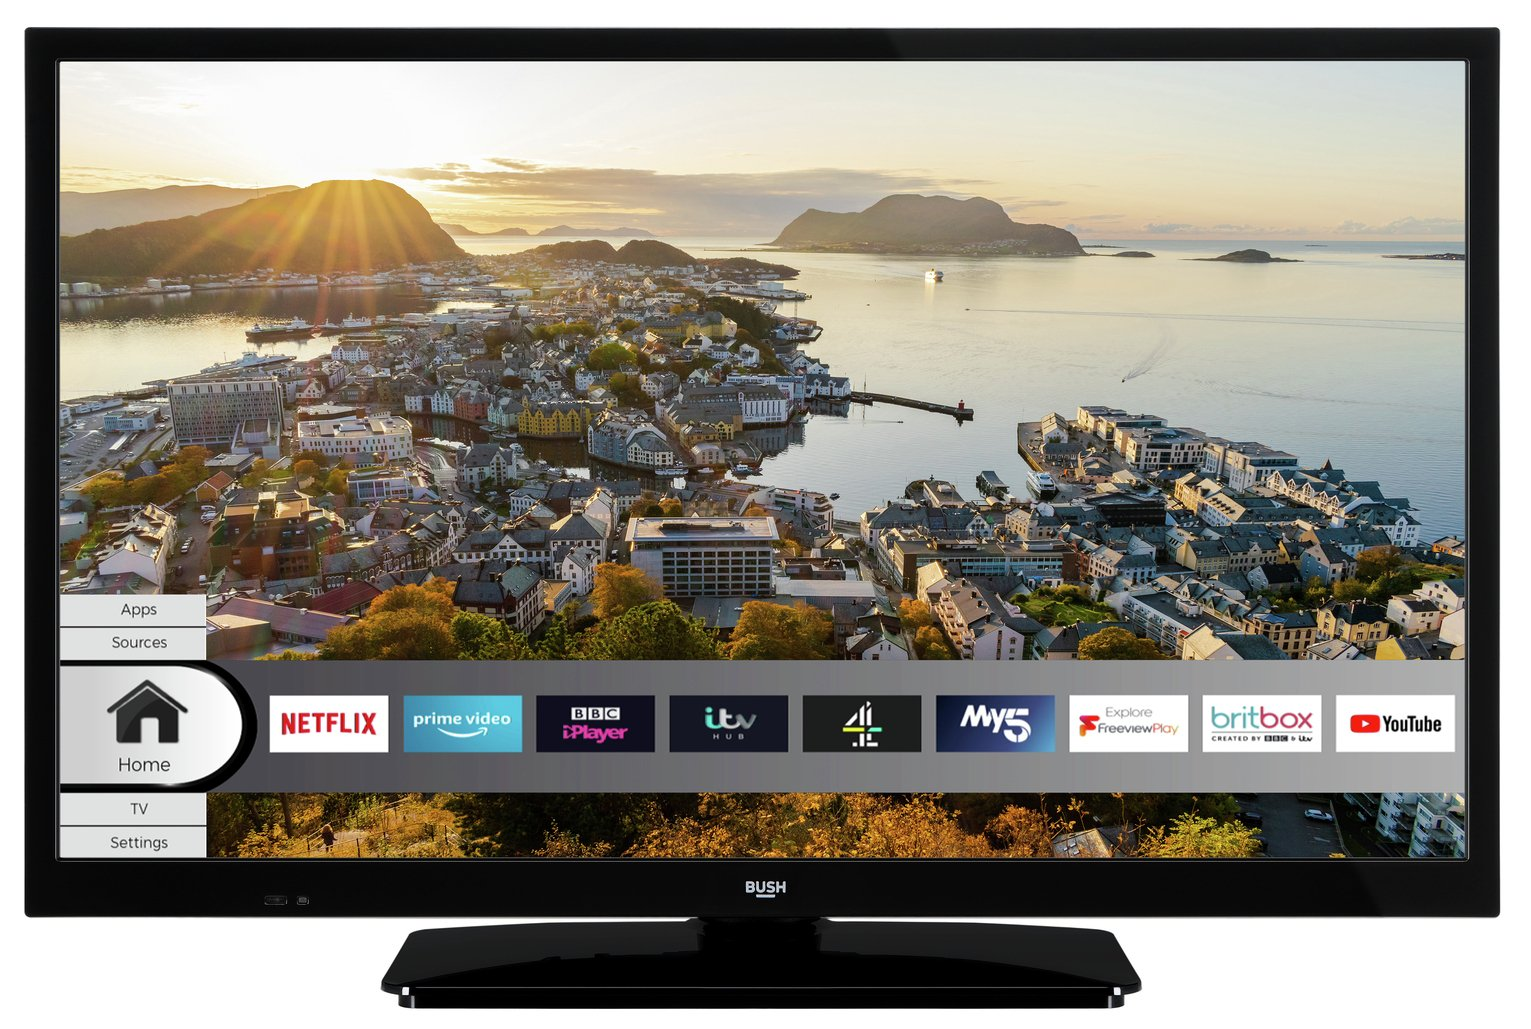 Bush 24 Inch Smart HD Ready HDR Freeview TV